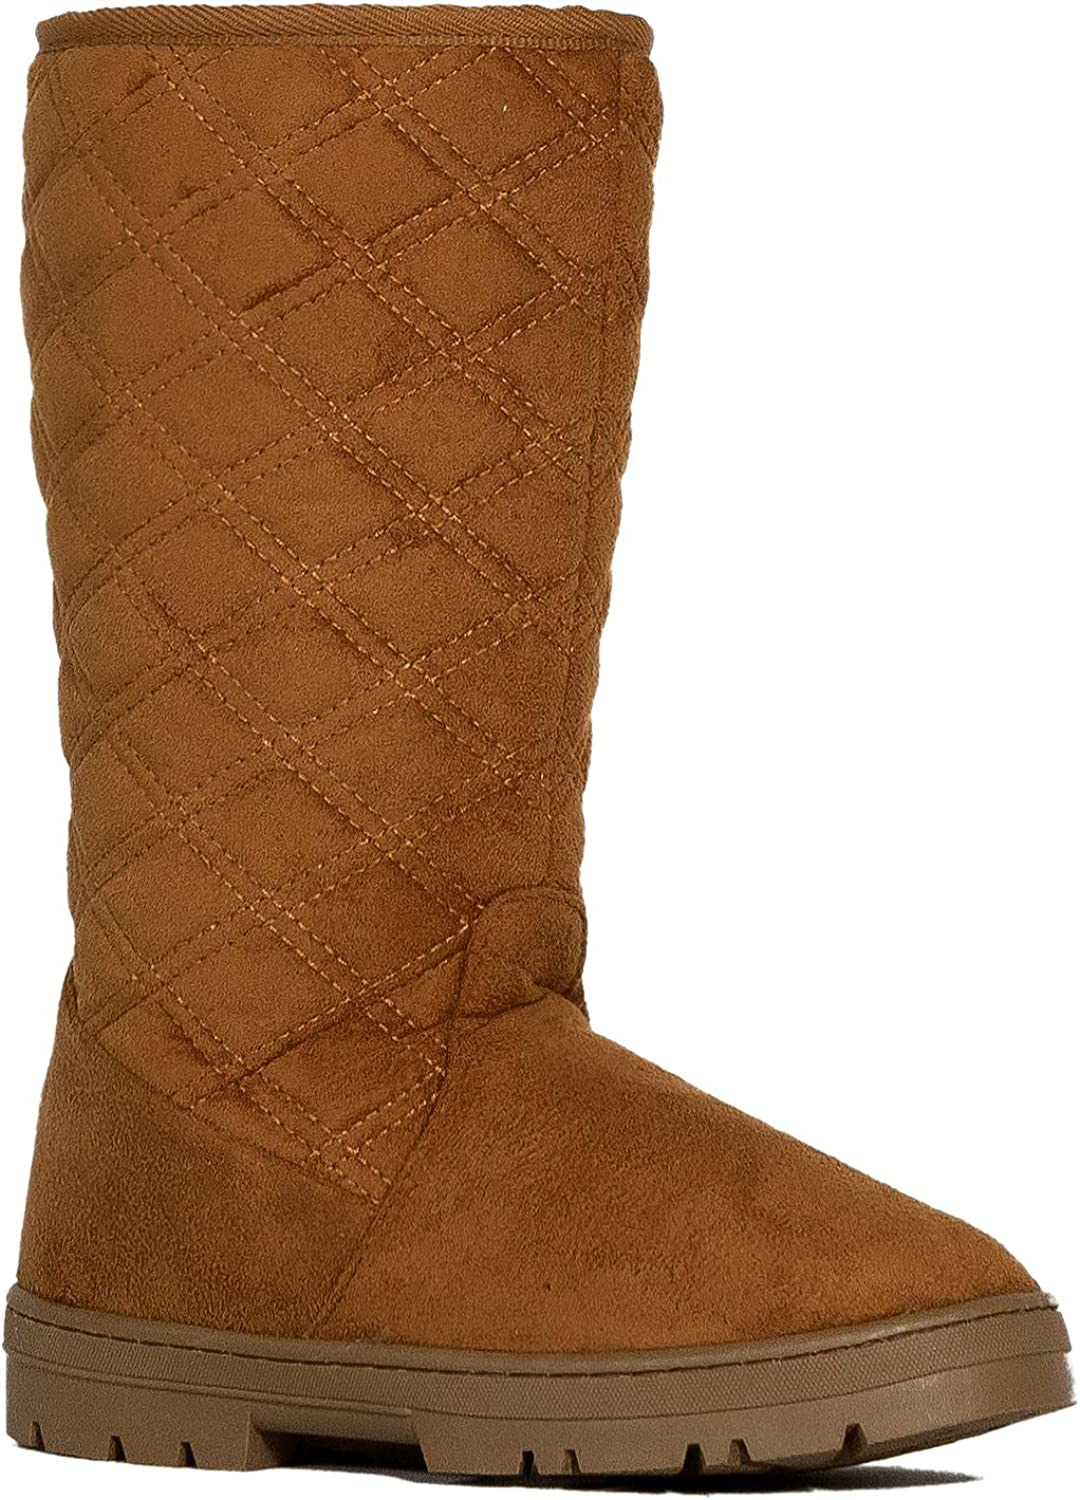 Room Of Fashion Women's Shearling Fur Lined with Quilt Pattern Winter Eskimo Boots